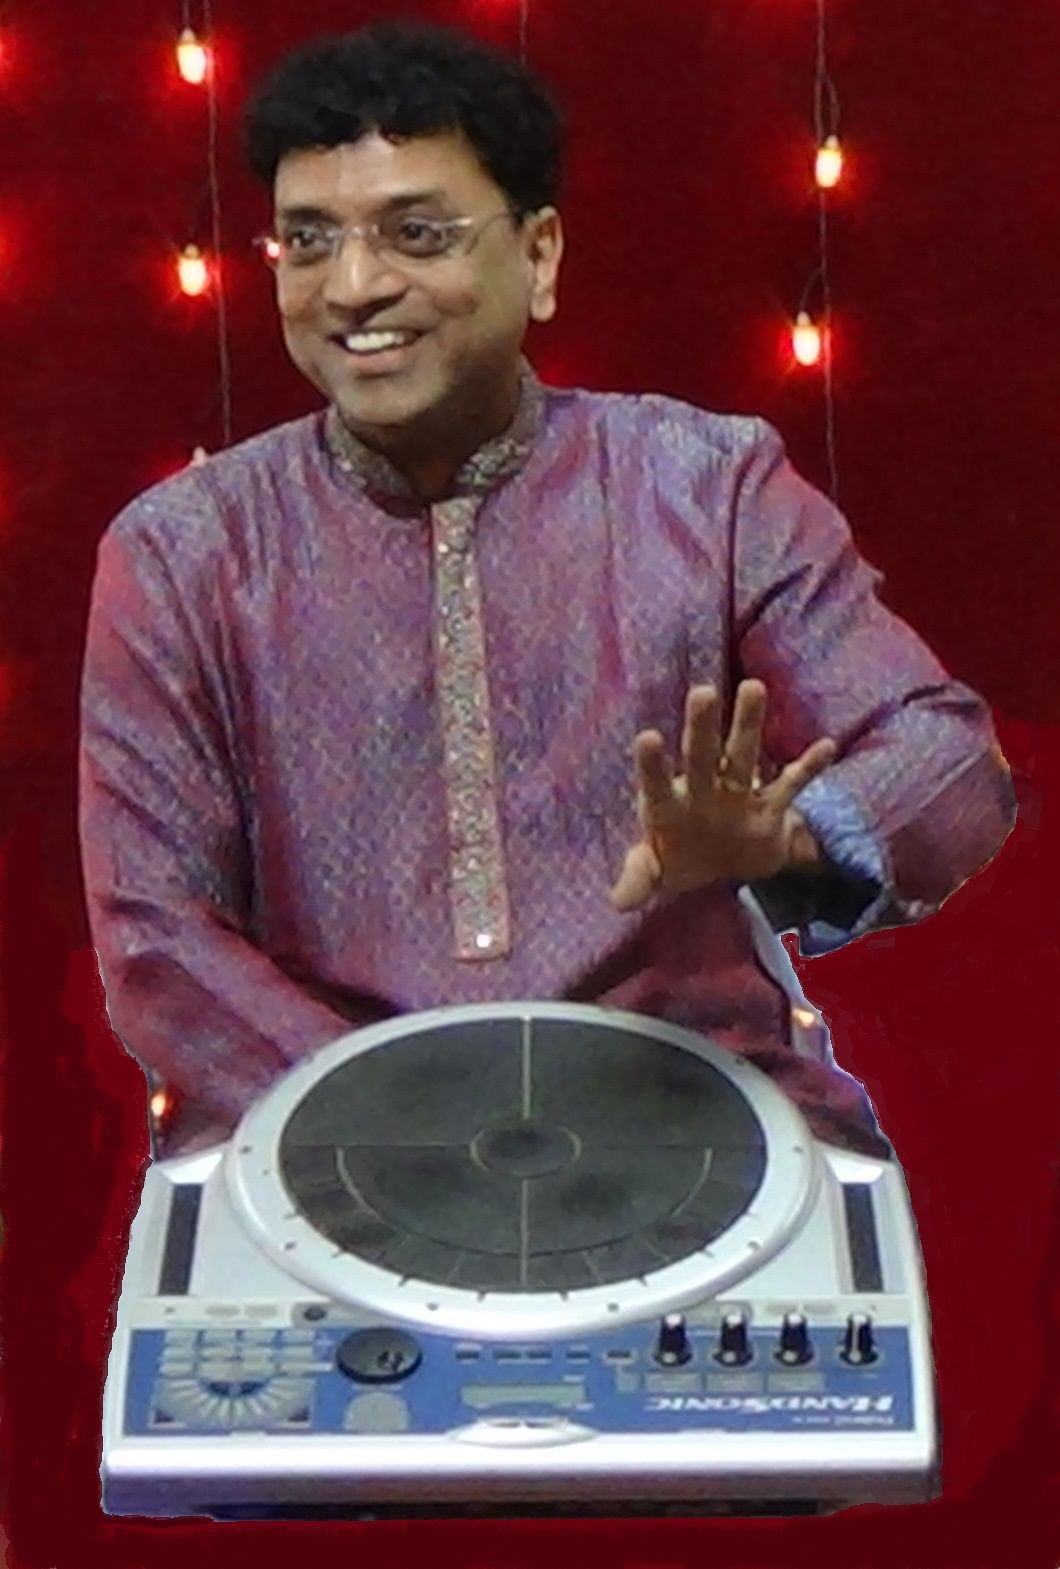 Jaywant Utpat has performed with some of the most renowned artists of Indian music industry.